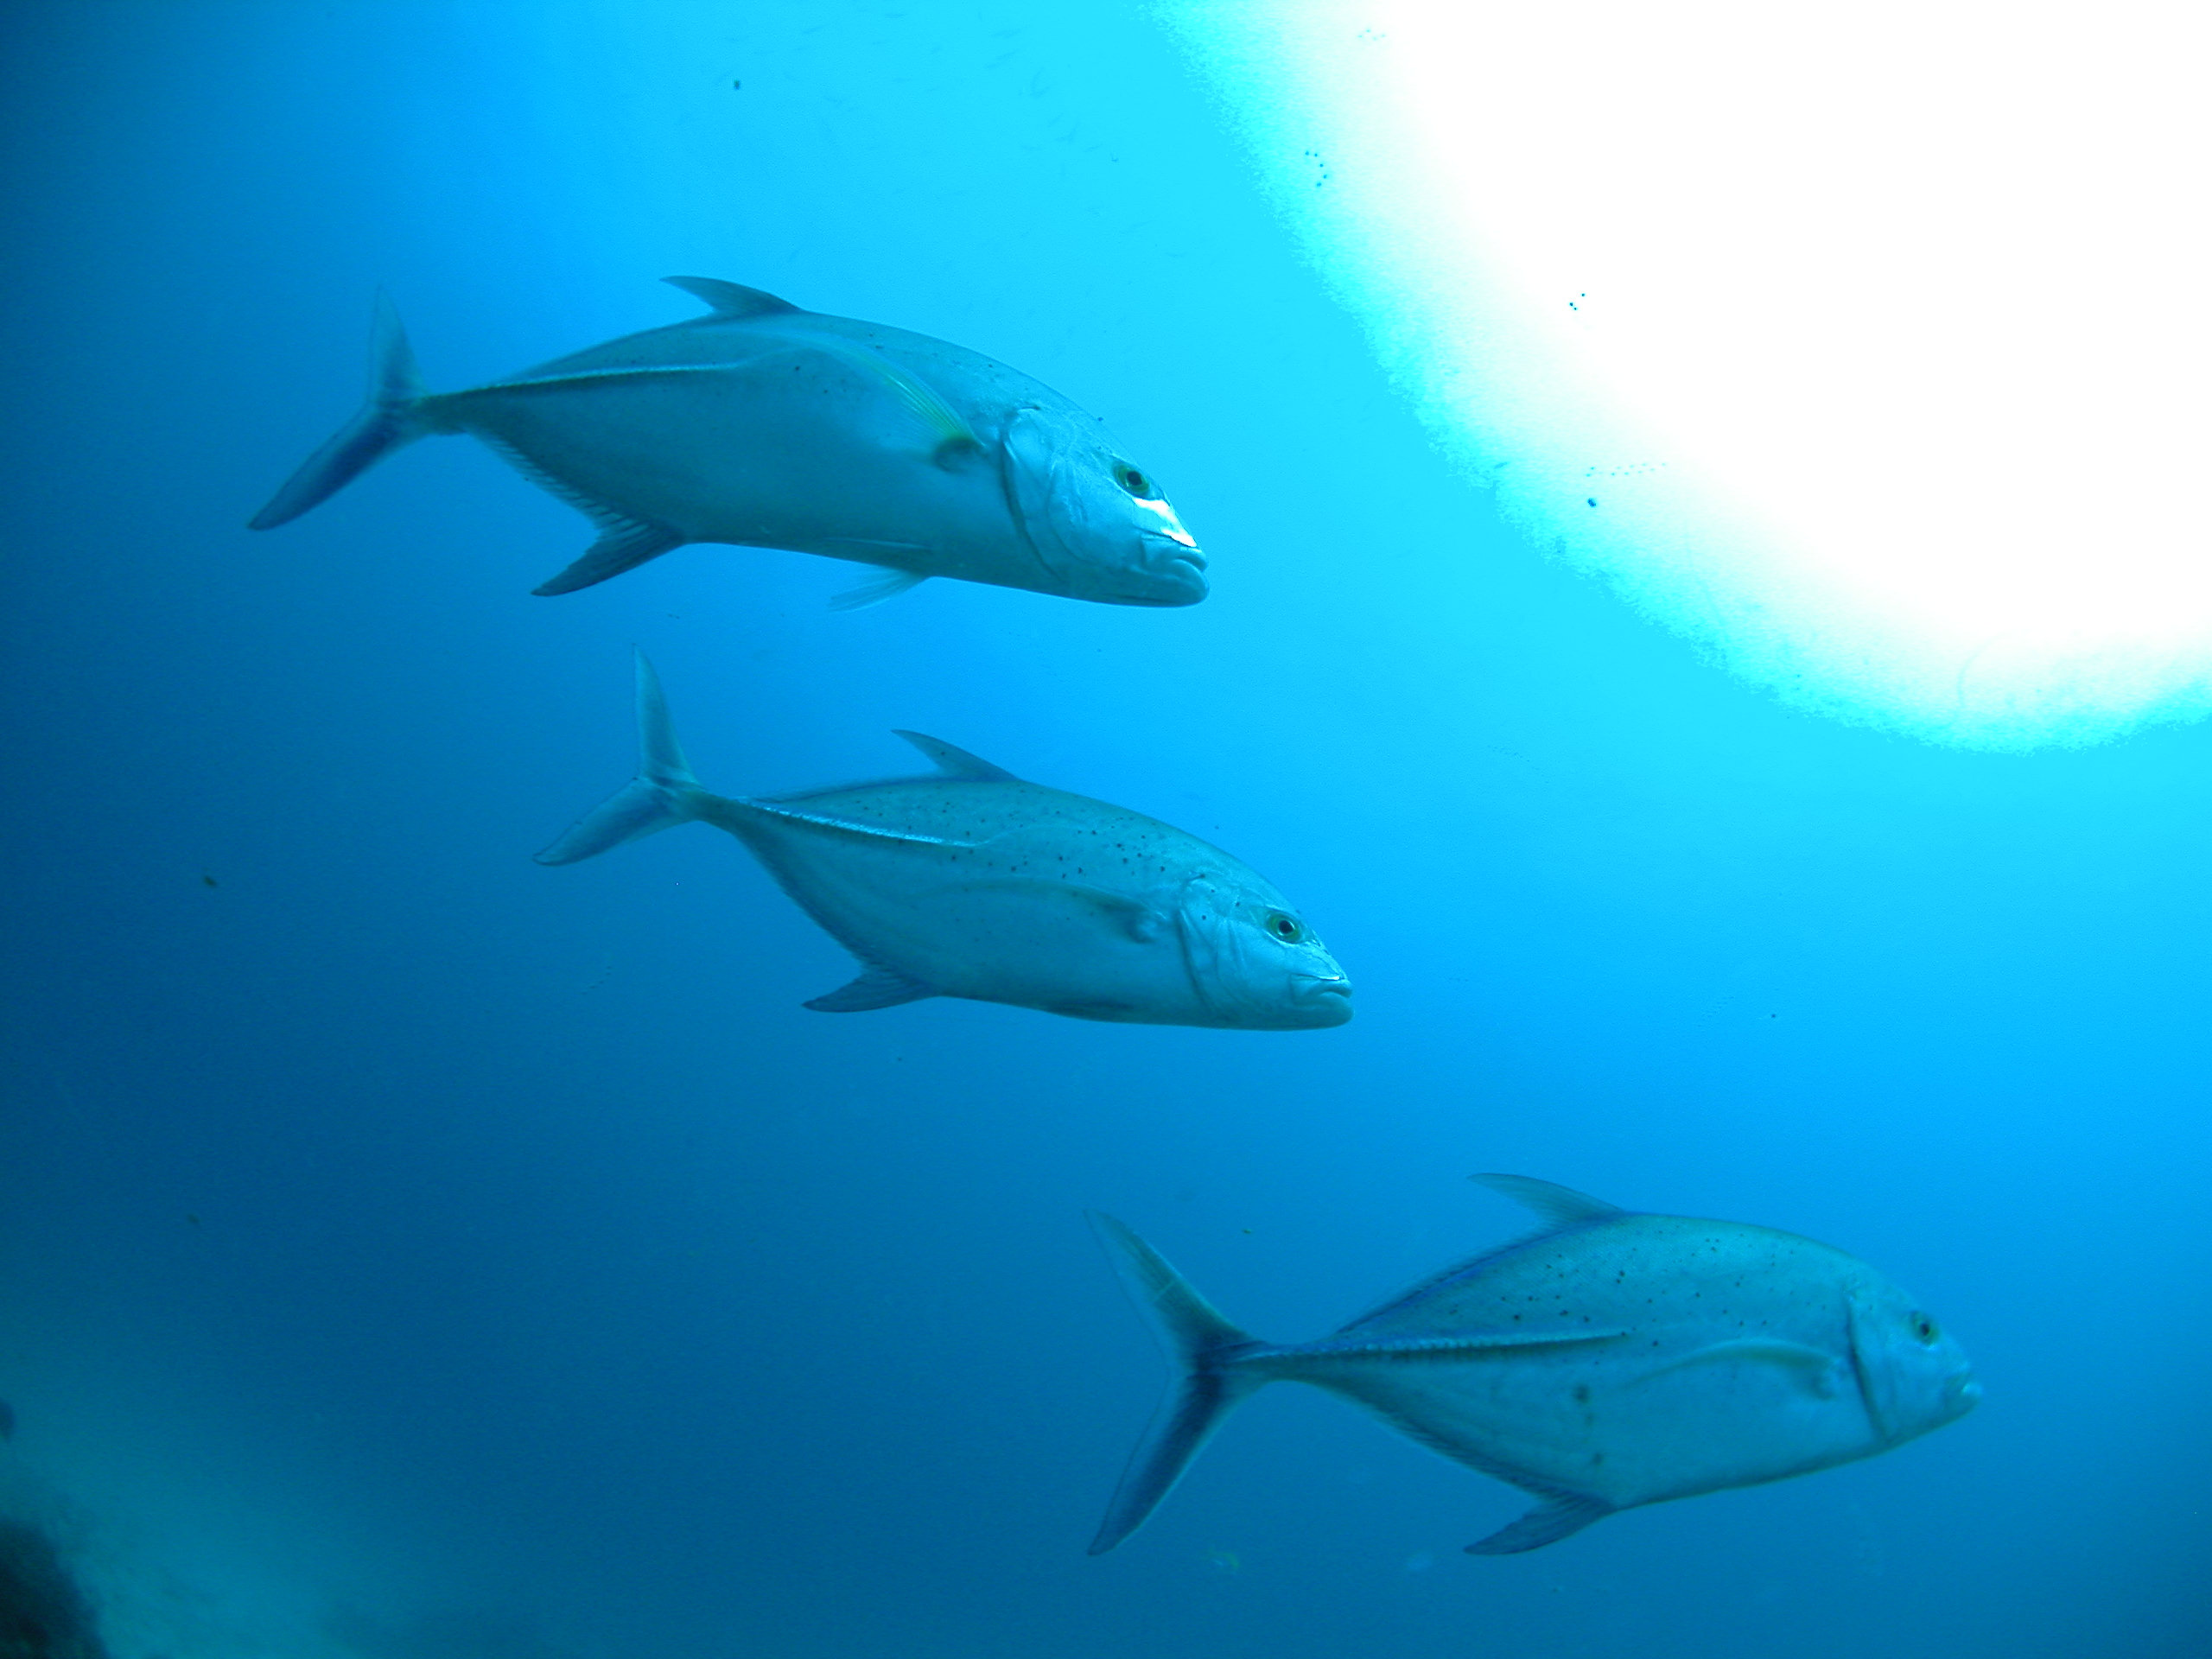 Photo: ©TANAKA Juuyoh (田中十洋) via a Creative Commons License (https://commons.wikimedia.org/wiki/File:Bluefin_trevally_trio.jpg)